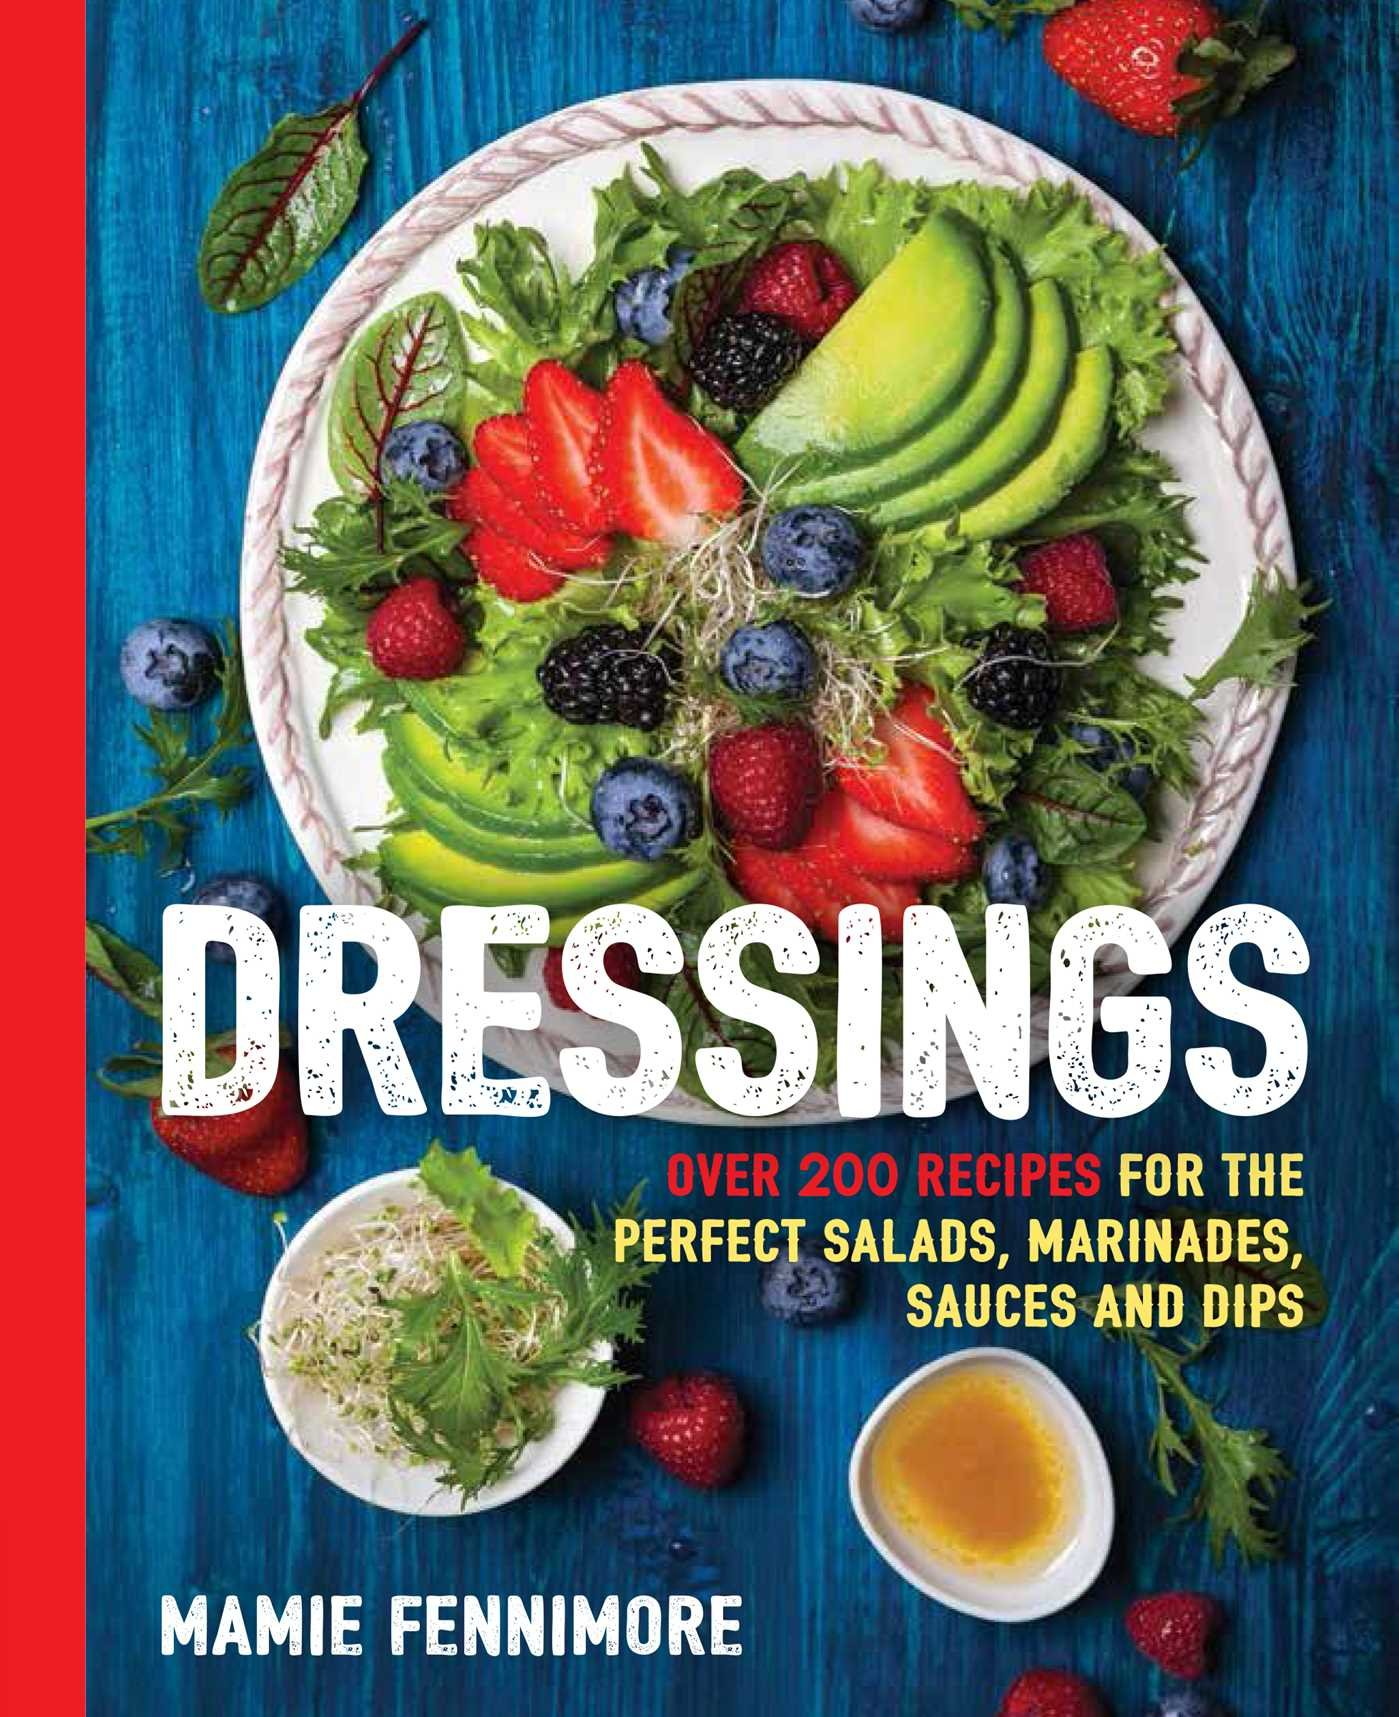 Dressings: Over 200 Recipes for the Perfect Salads, Marinades, Sauces, and Dips (The Art of Entertaining)